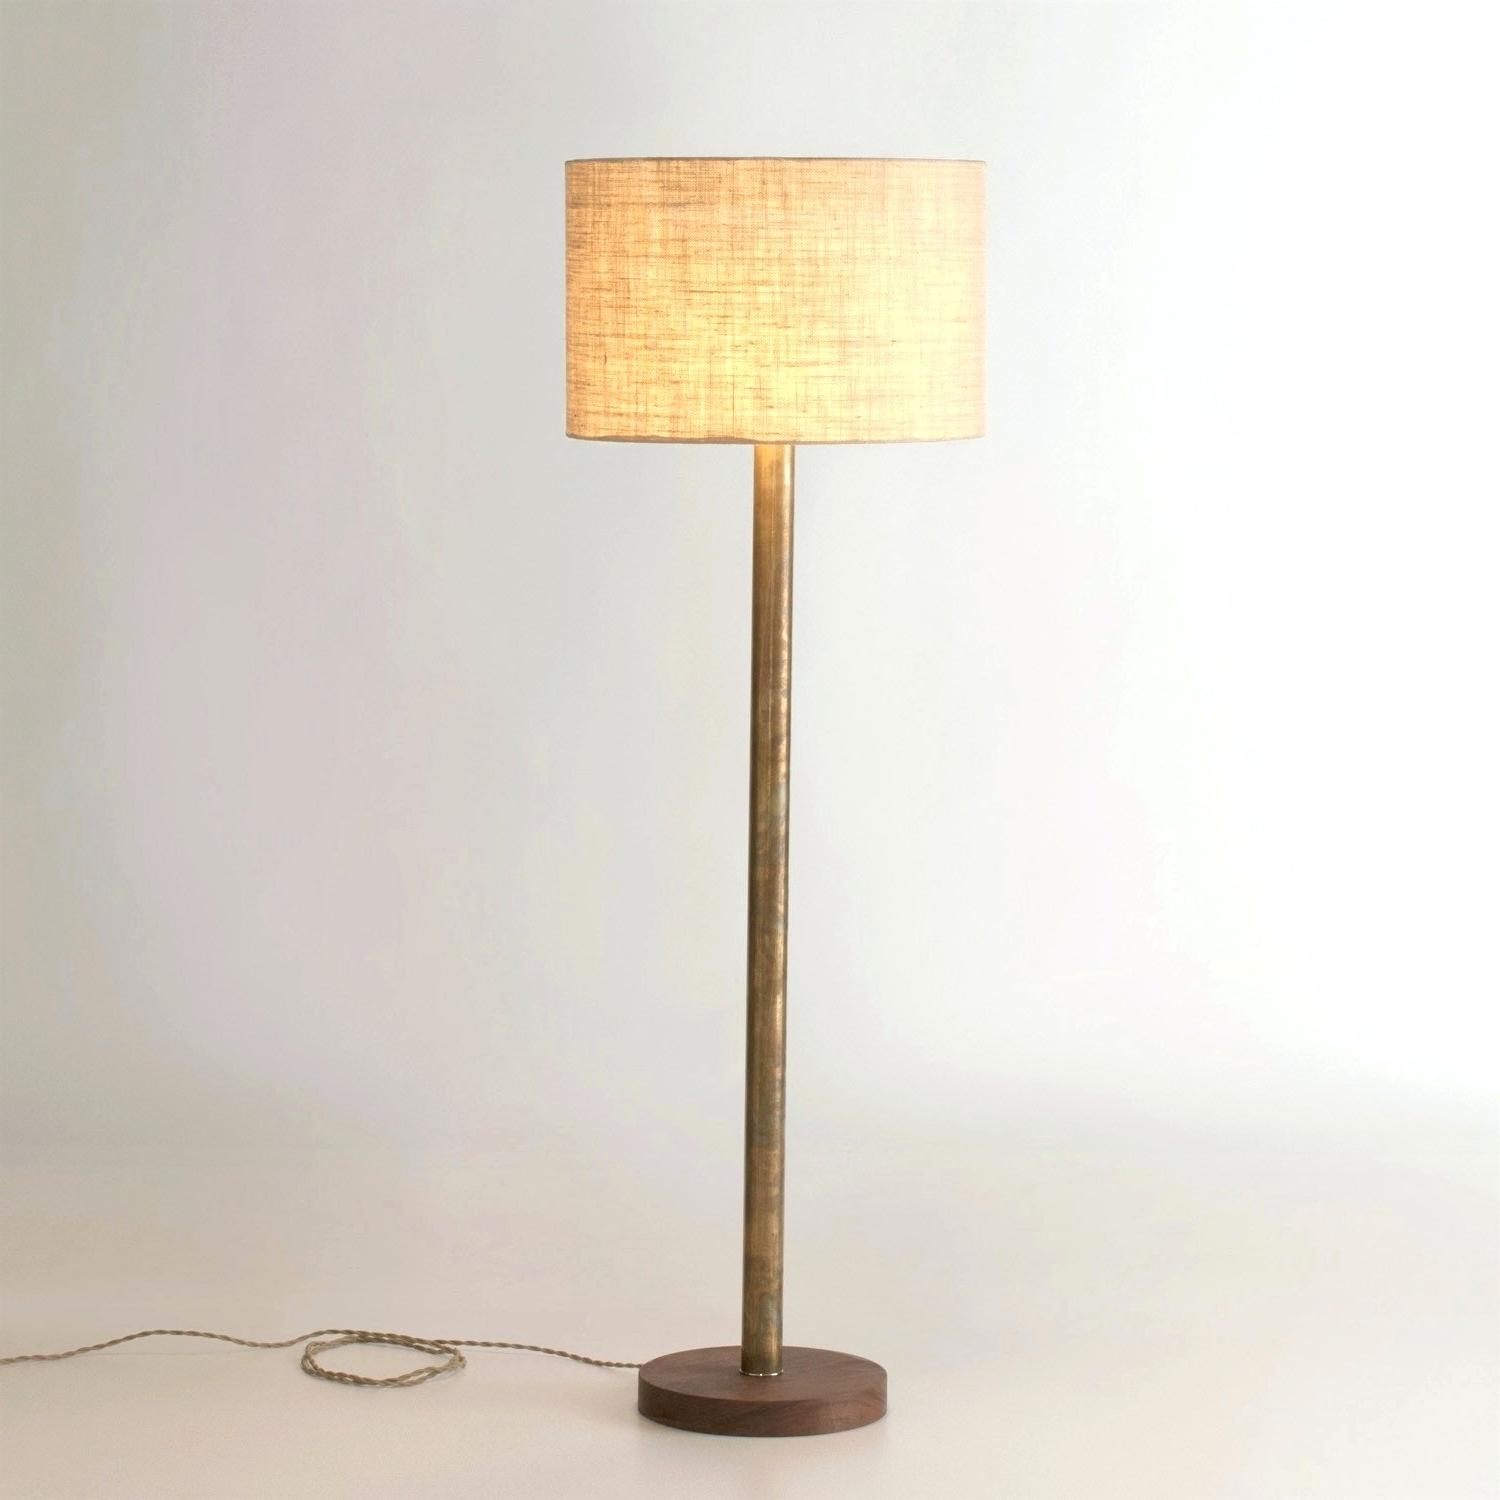 Favorite Light : Chandelier Style Floor Lamp With Lamps And The Best Choice Pertaining To Chandelier Standing Lamps (View 9 of 20)